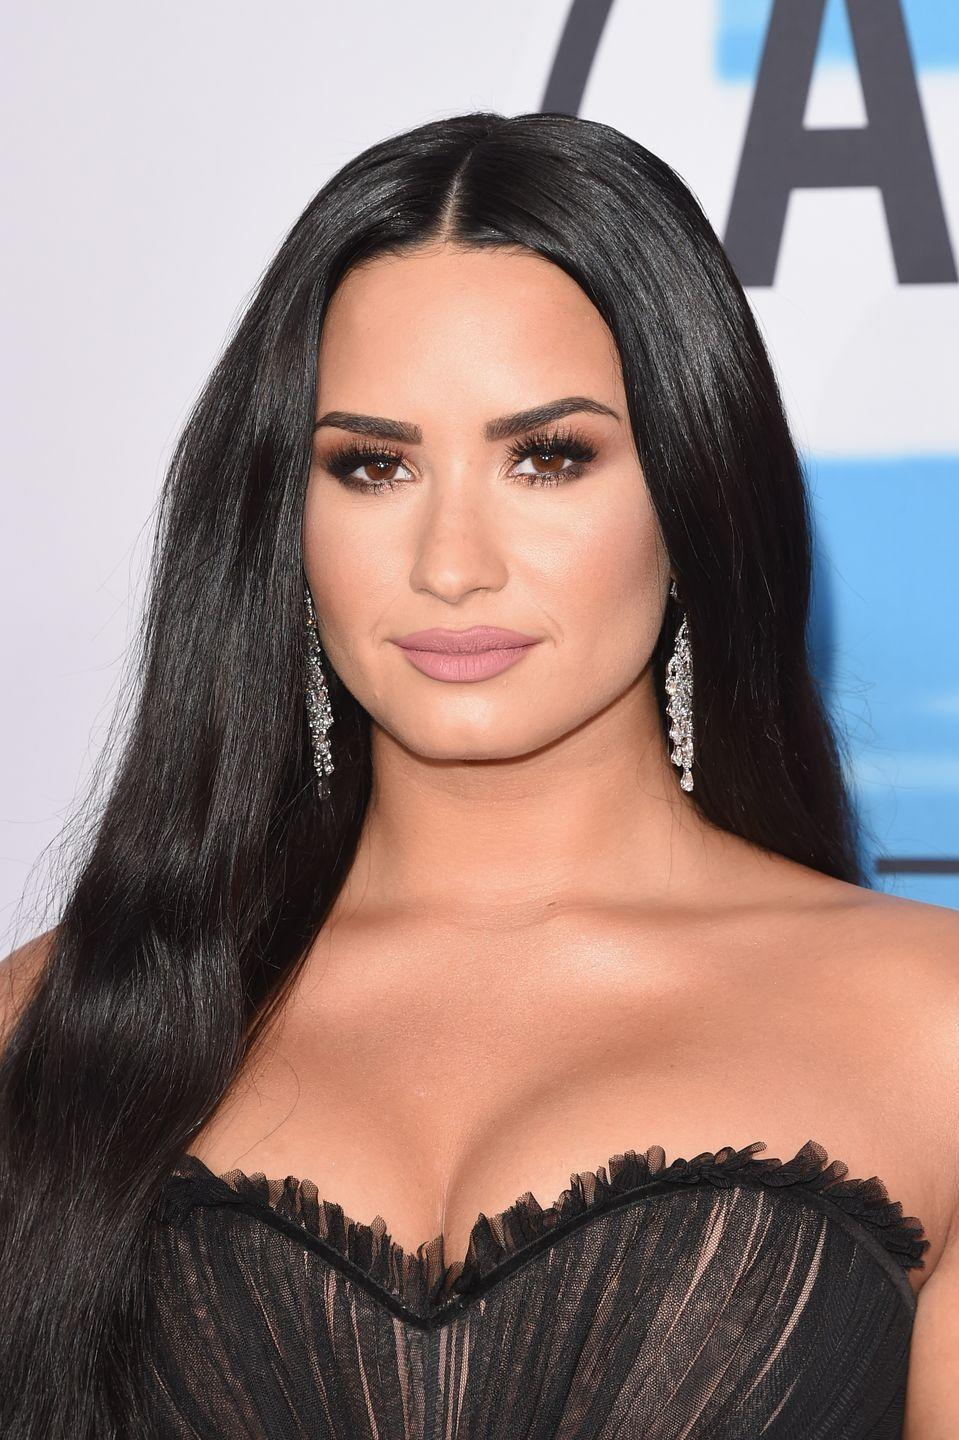 """<p>The singer and former Disney Channel star, who also struggled with bulimia and addiction, became a spokeswoman for mental health awareness campaign <a href=""""http://www.bevocalspeakup.com/about.html"""" rel=""""nofollow noopener"""" target=""""_blank"""" data-ylk=""""slk:Be Vocal"""" class=""""link rapid-noclick-resp"""">Be Vocal</a> in 2015. """"I could either not talk about my stint in rehab and hope that it went away, or I could talk about it and inspire people to get help for their issues, as well, so that's exactly what I did,"""" she told <a href=""""https://www.womenshealthmag.com/health/demi-lovato-be-vocal-campaign"""" rel=""""nofollow noopener"""" target=""""_blank"""" data-ylk=""""slk:Woman's Health"""" class=""""link rapid-noclick-resp""""><em>Woman's Health</em></a>. </p>"""